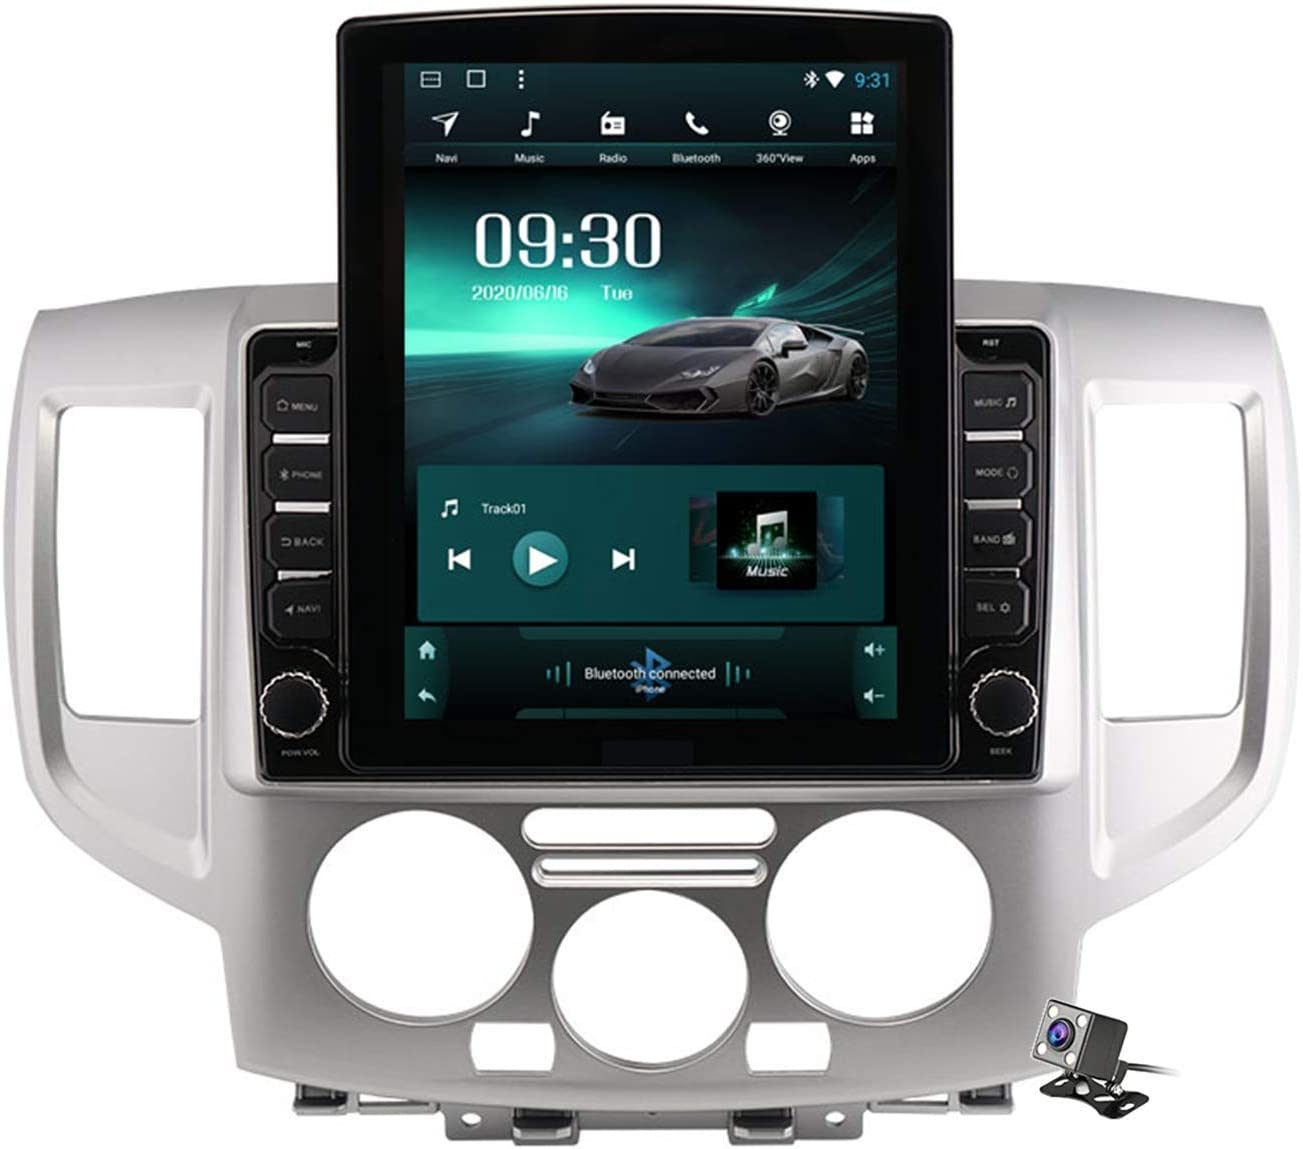 HBWZ Android 9.0 Car Import Stereo Radio Max 43% OFF for NV200 2010-2018 Nissan GP